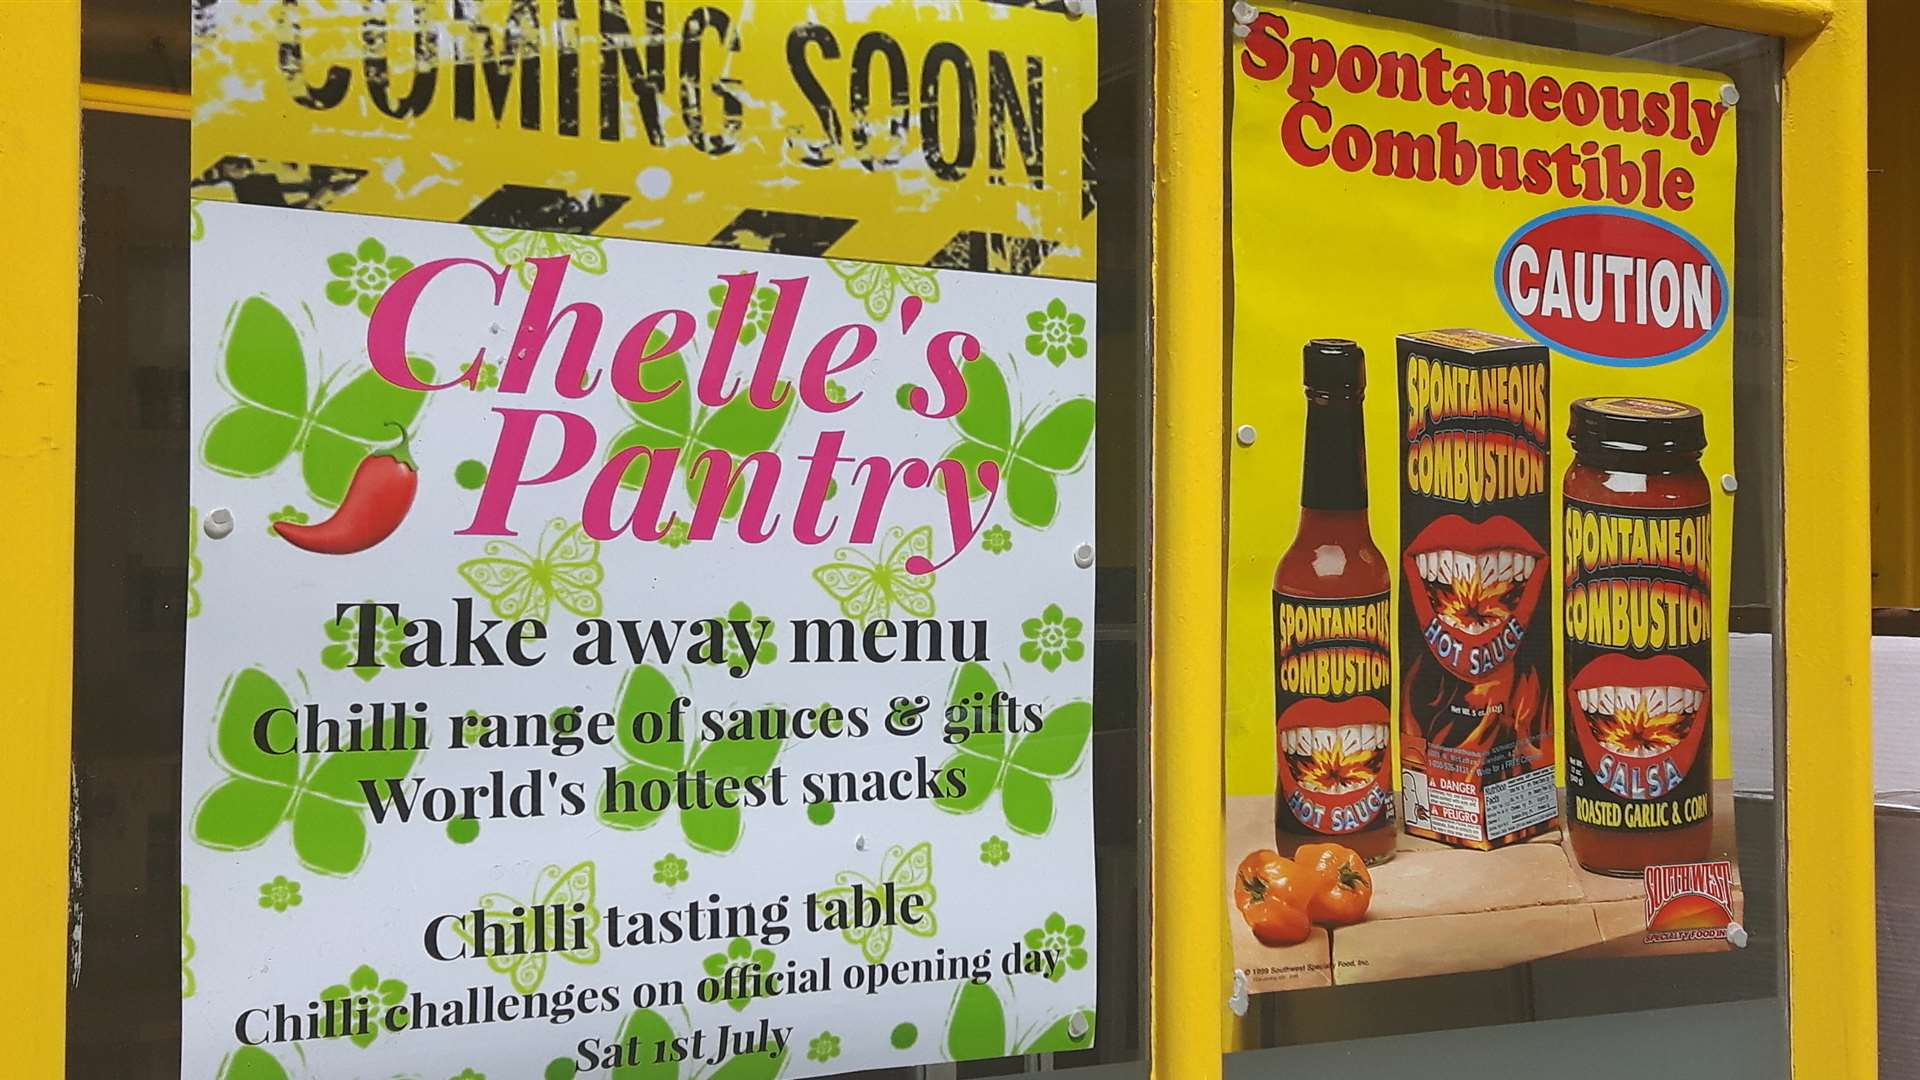 Chelle's Pantry in Rochester High Street